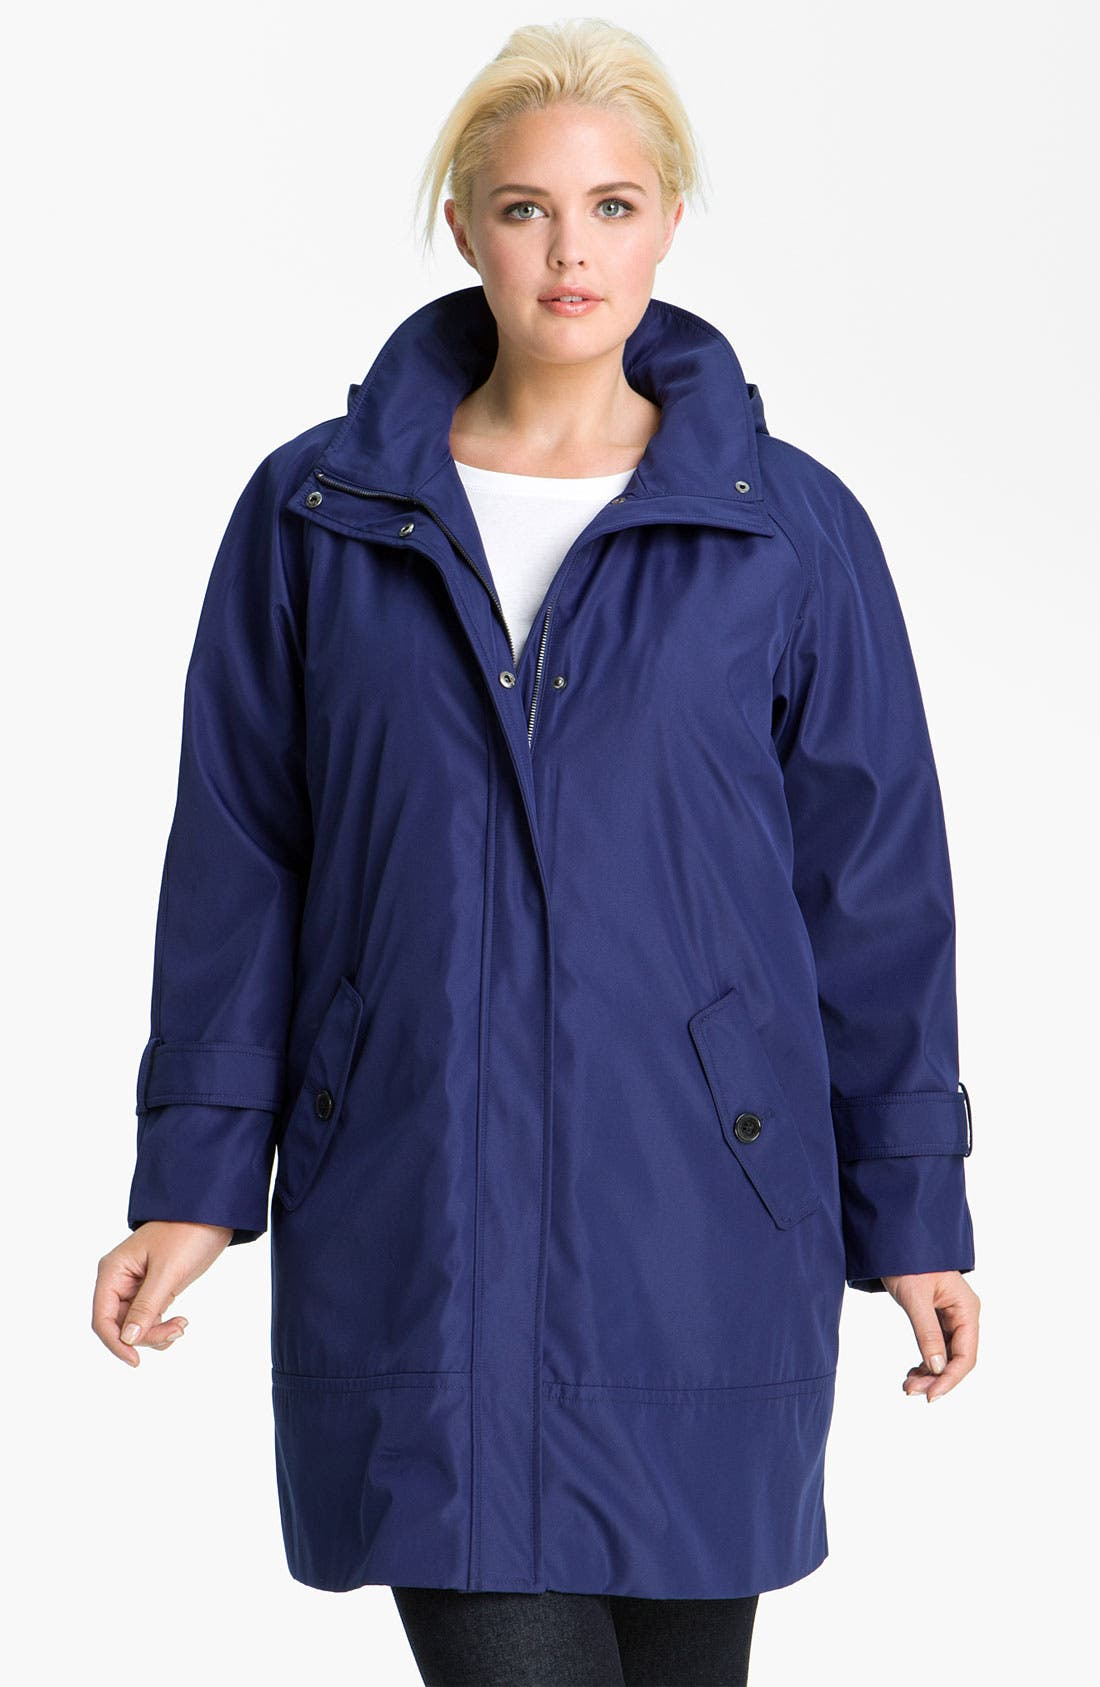 Alternate Image 1 Selected - Marc New York by Andrew Marc 'Caroll' Raincoat with Detachable Liner (Plus)